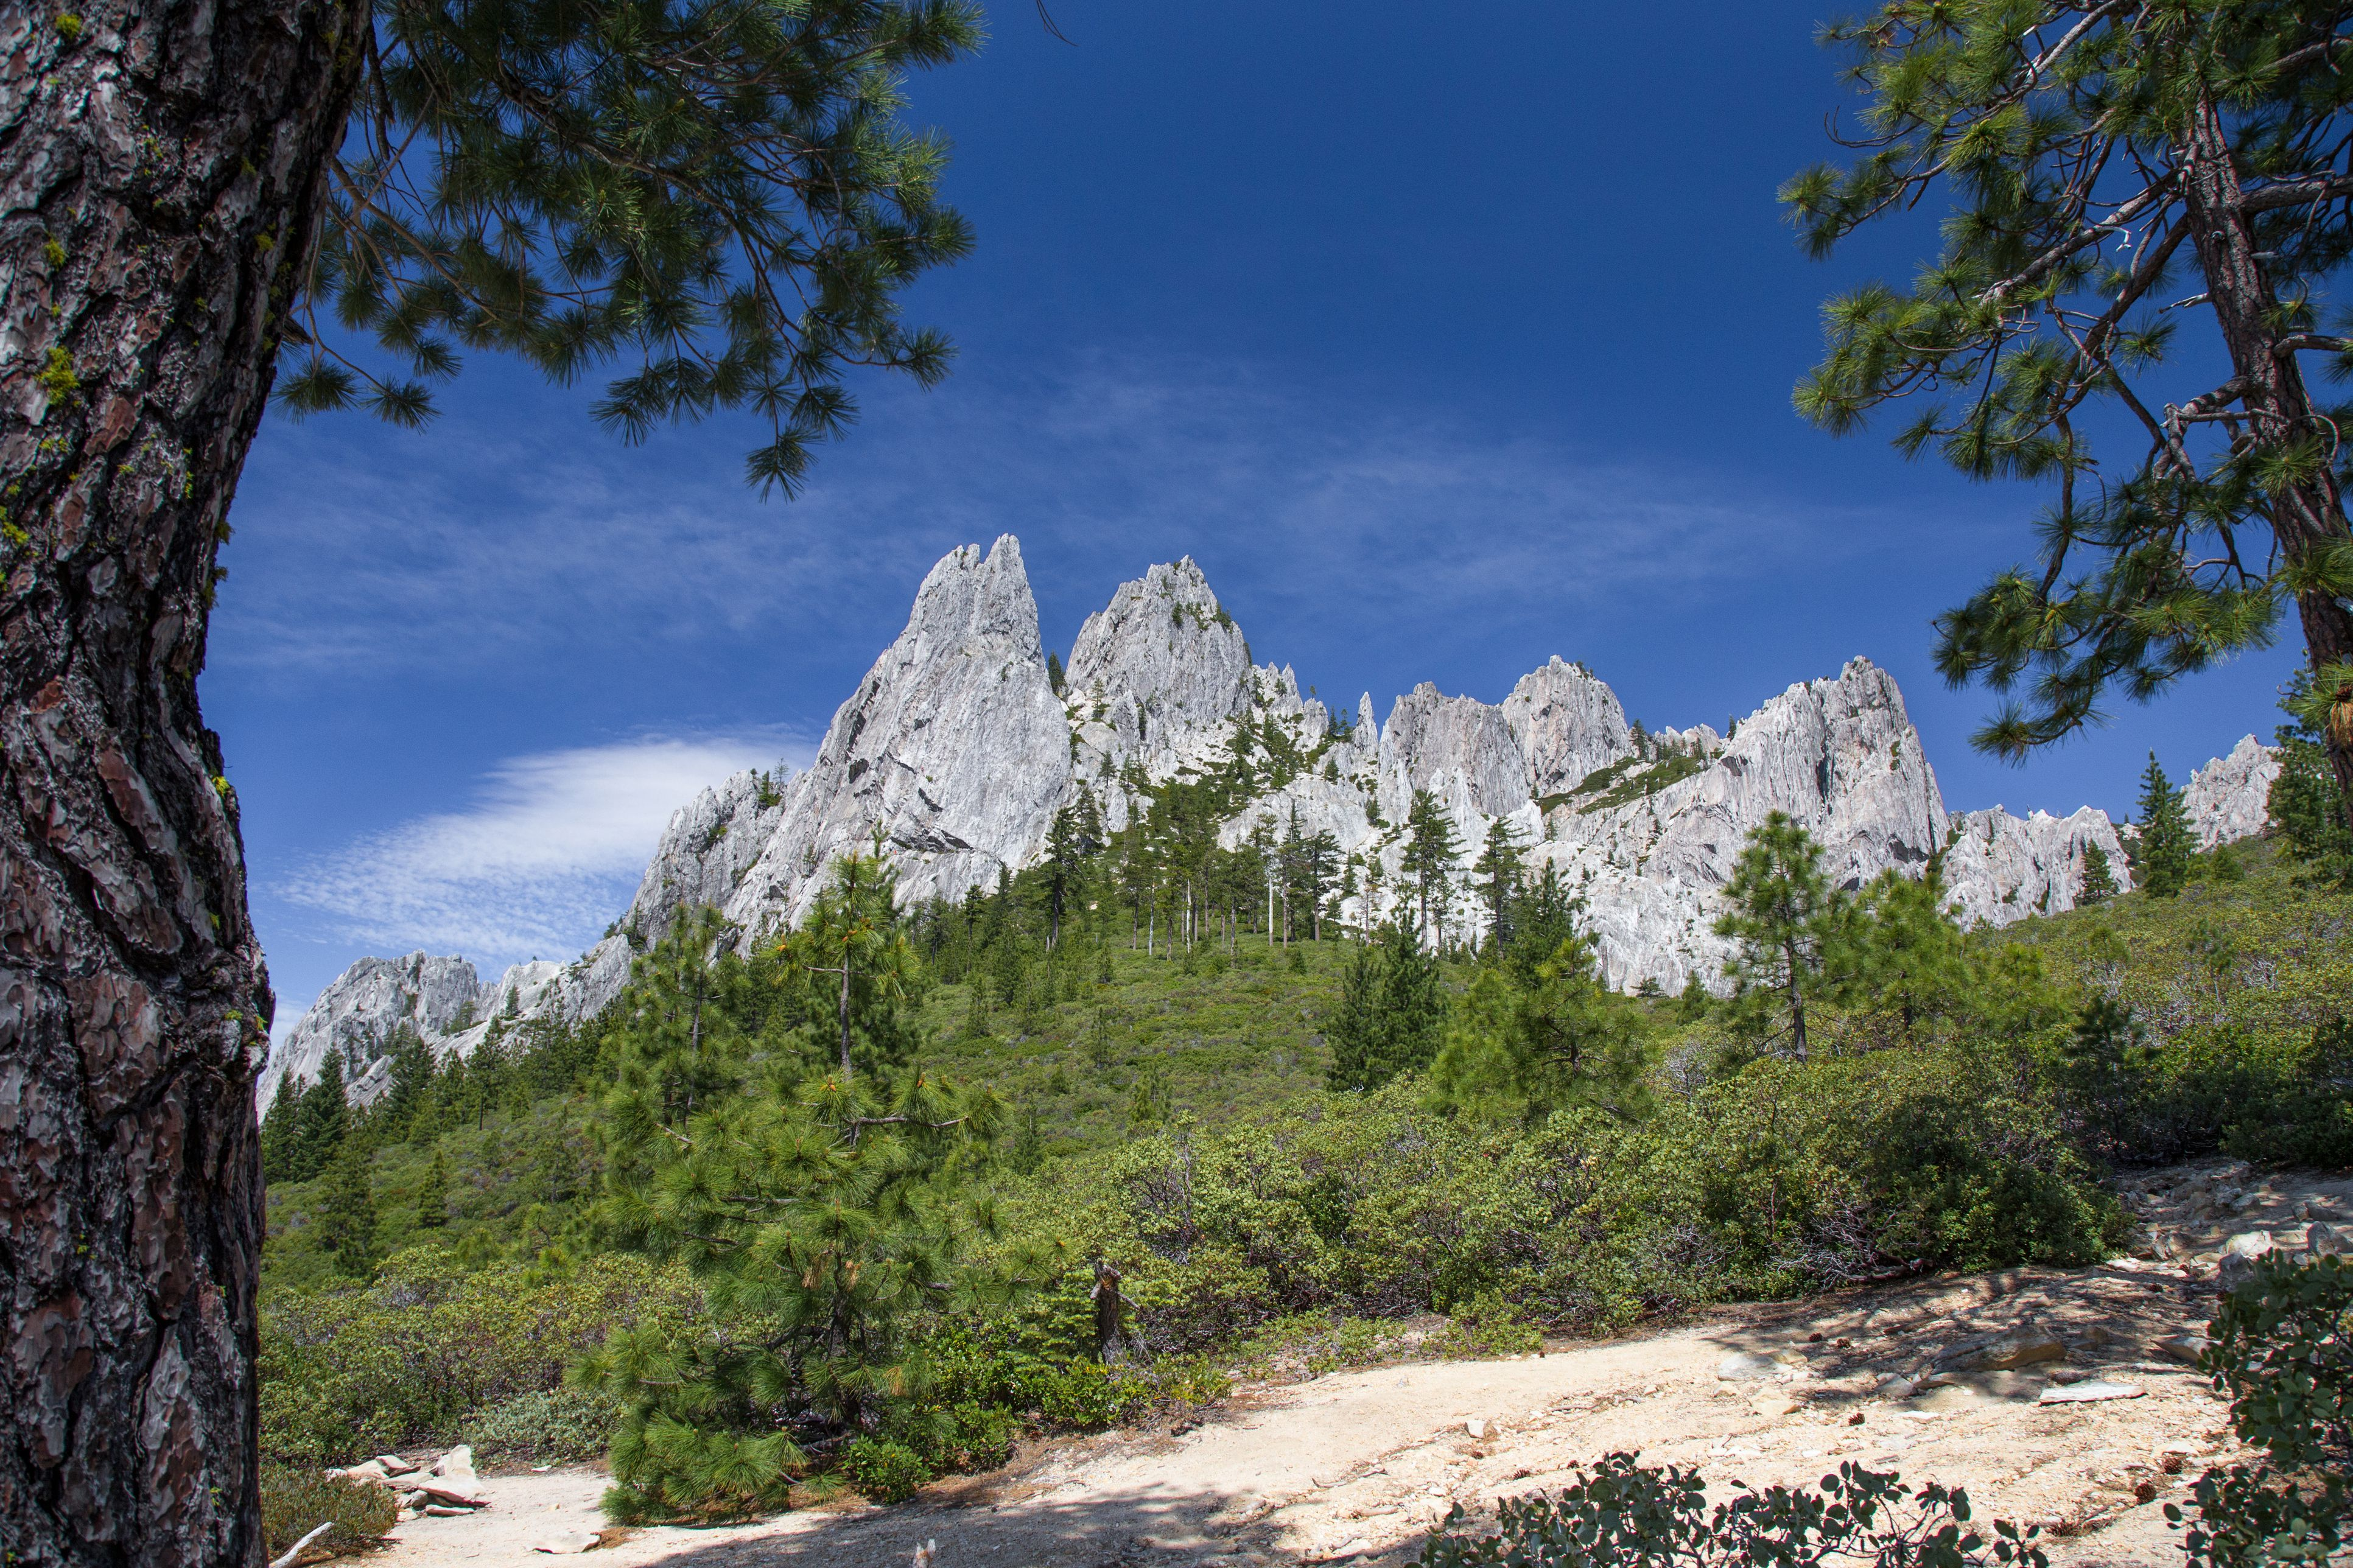 Castle Crags State Park: The Complete Guide